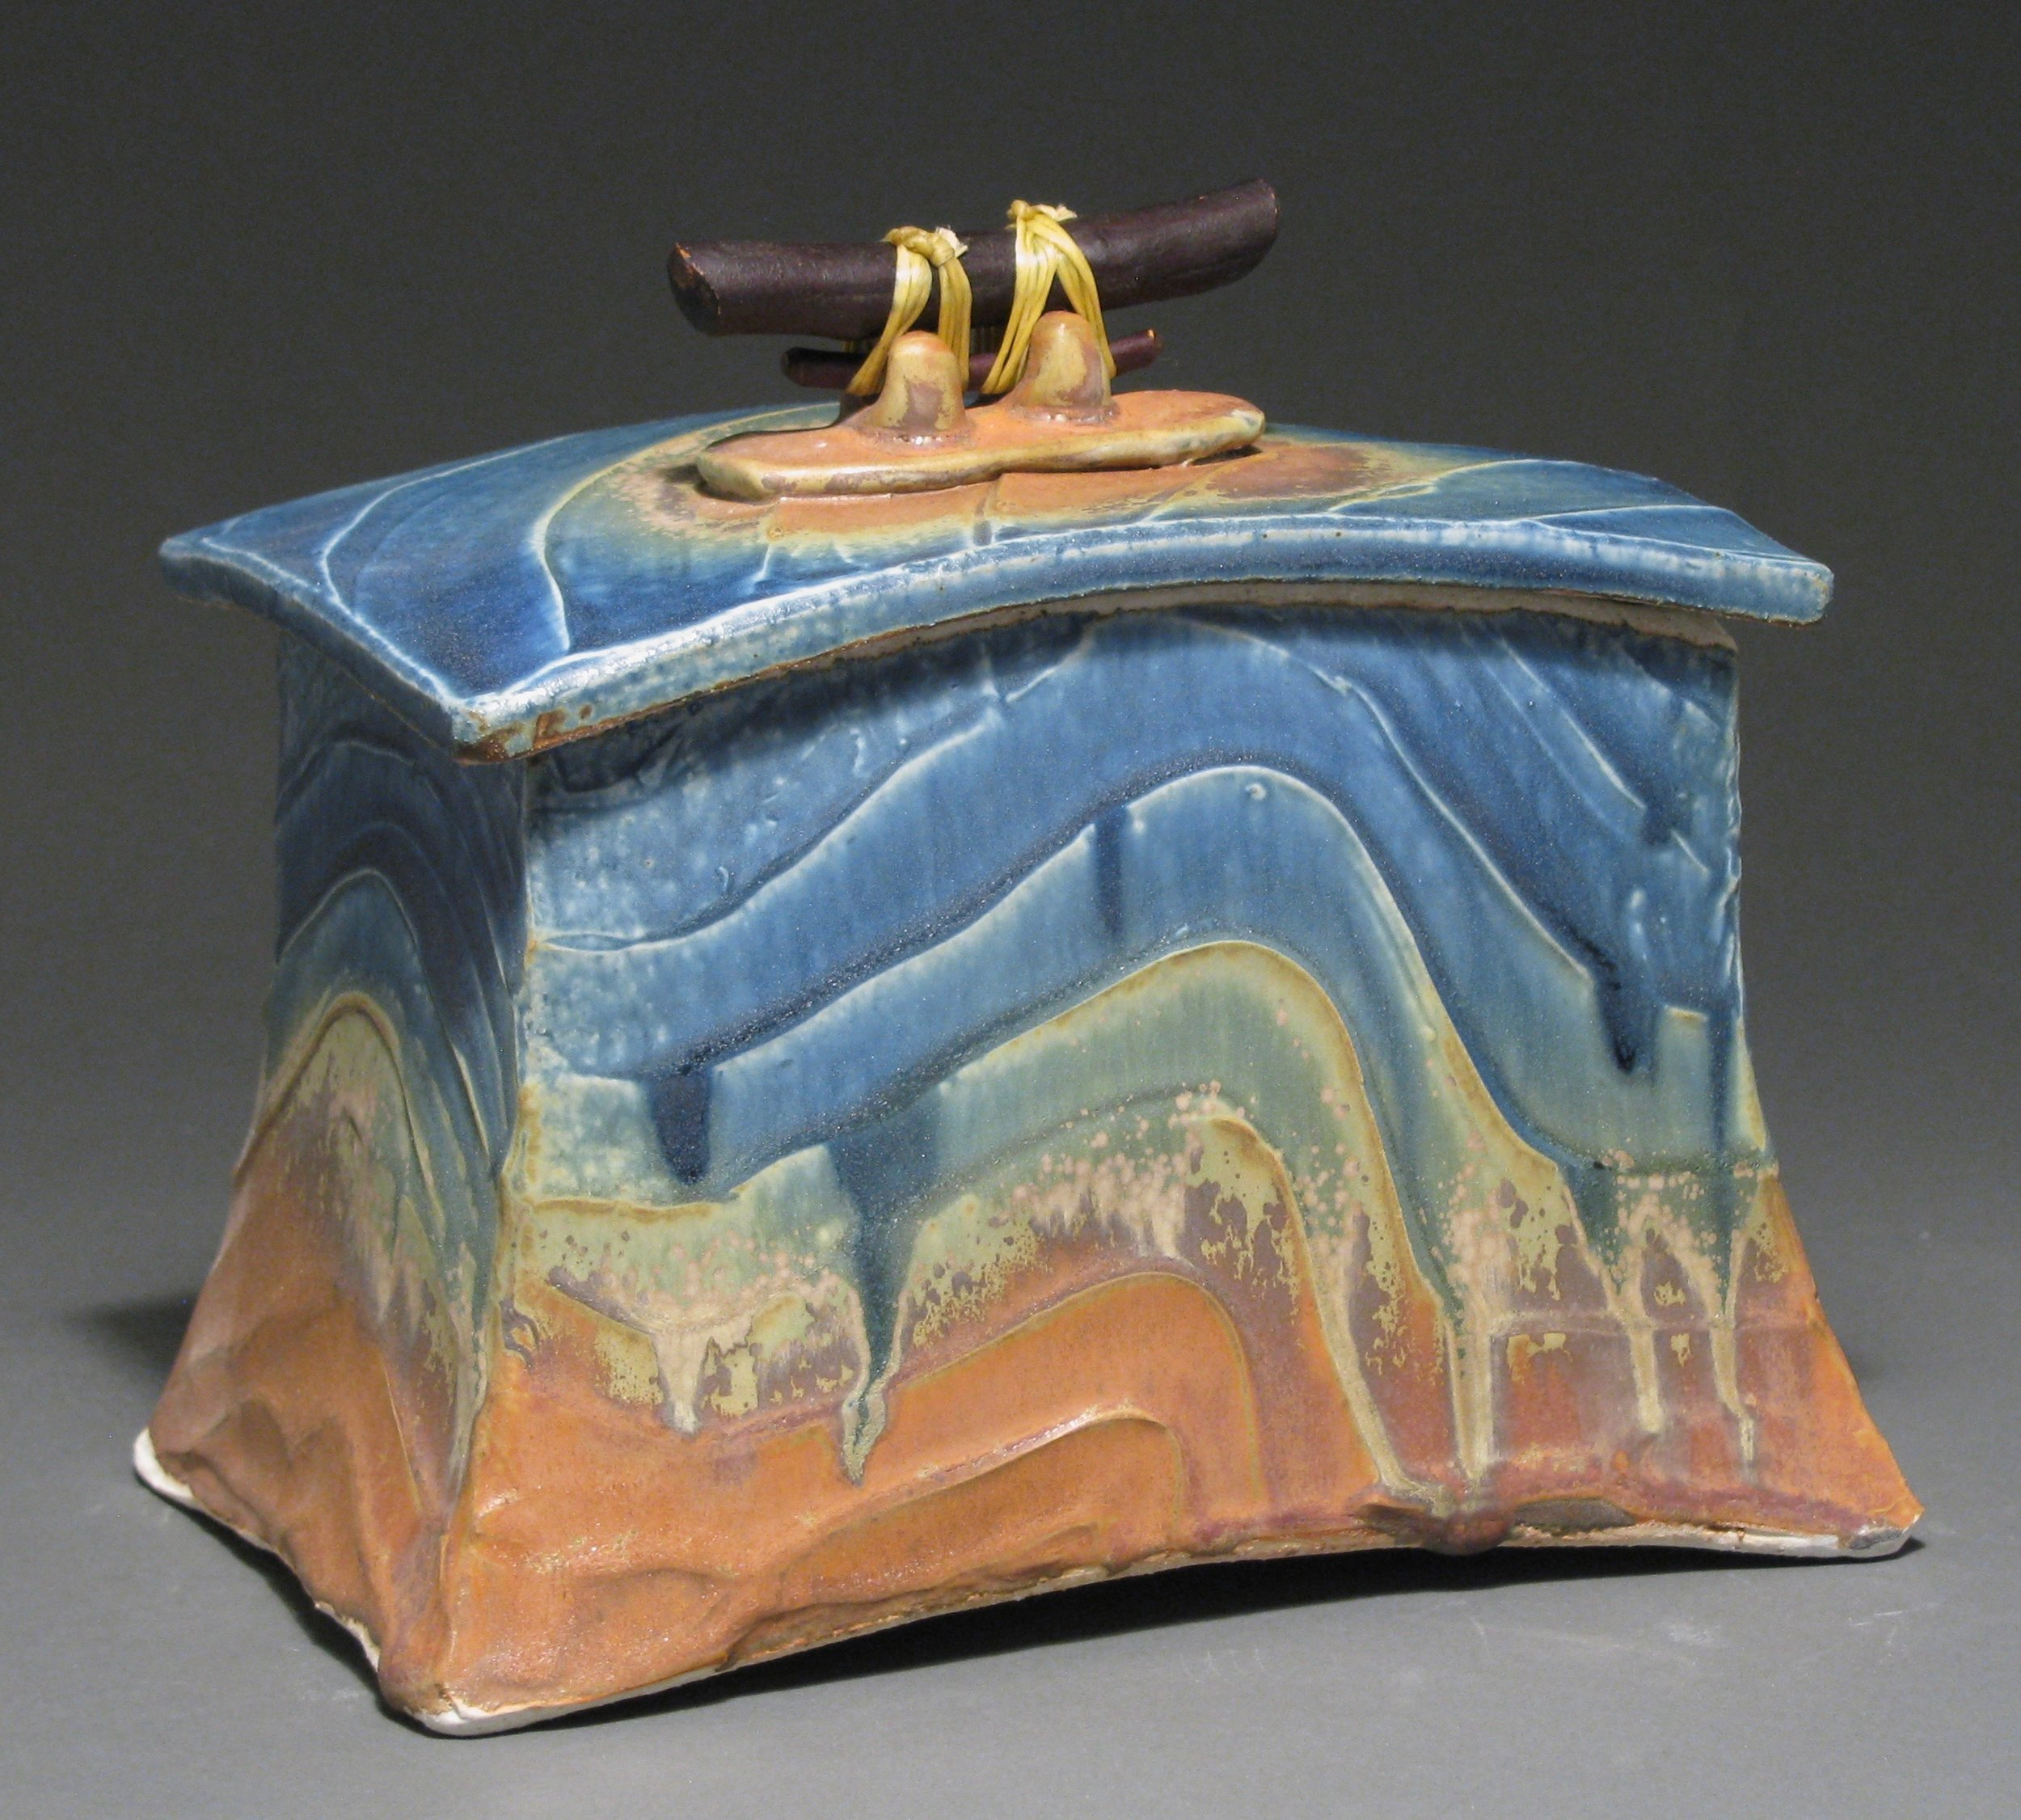 """Lidded box  7"""" tall by 7 3/4"""" long by 5 1/4"""" wide  Glazes: mixed blue and matte rust"""